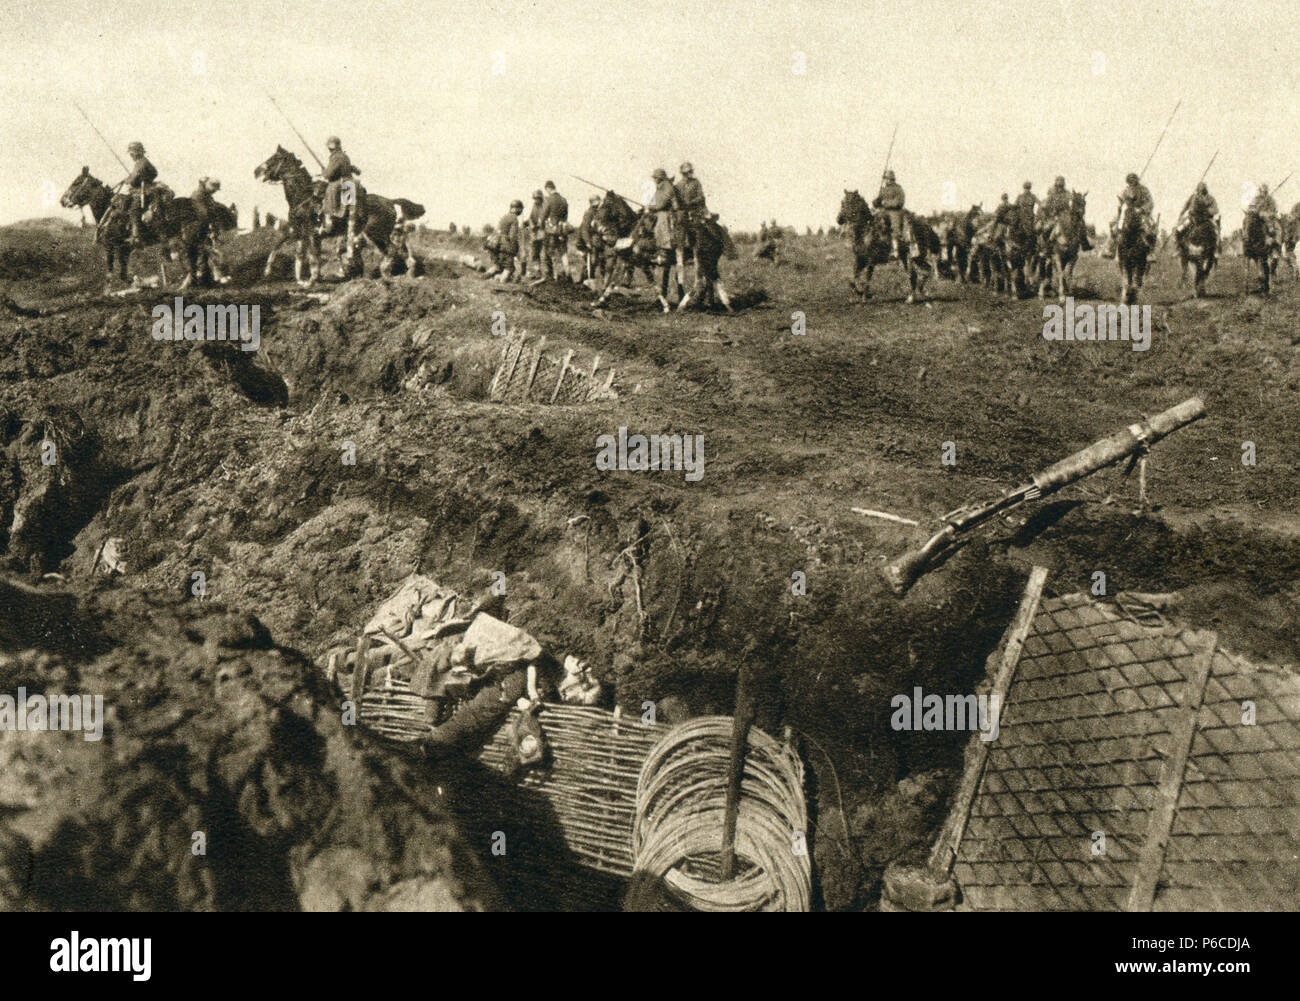 world war i, knight, division cavallry, ww1, wwi, world war one - Stock Image